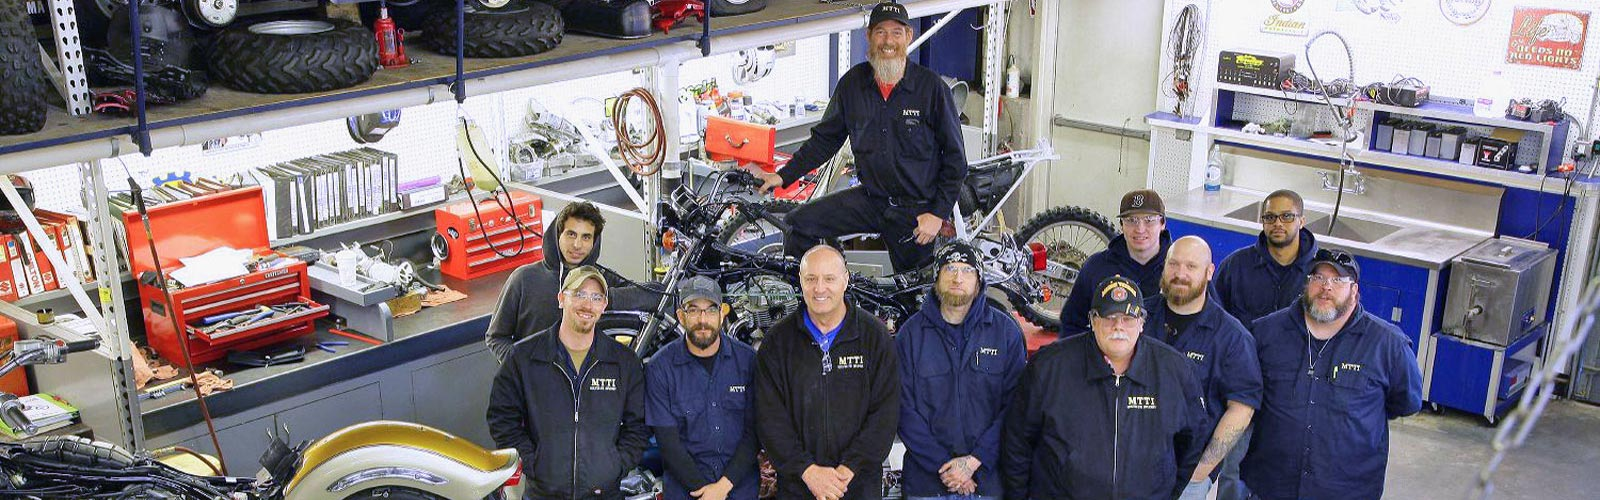 MTTI Instructor and motorcycle students.